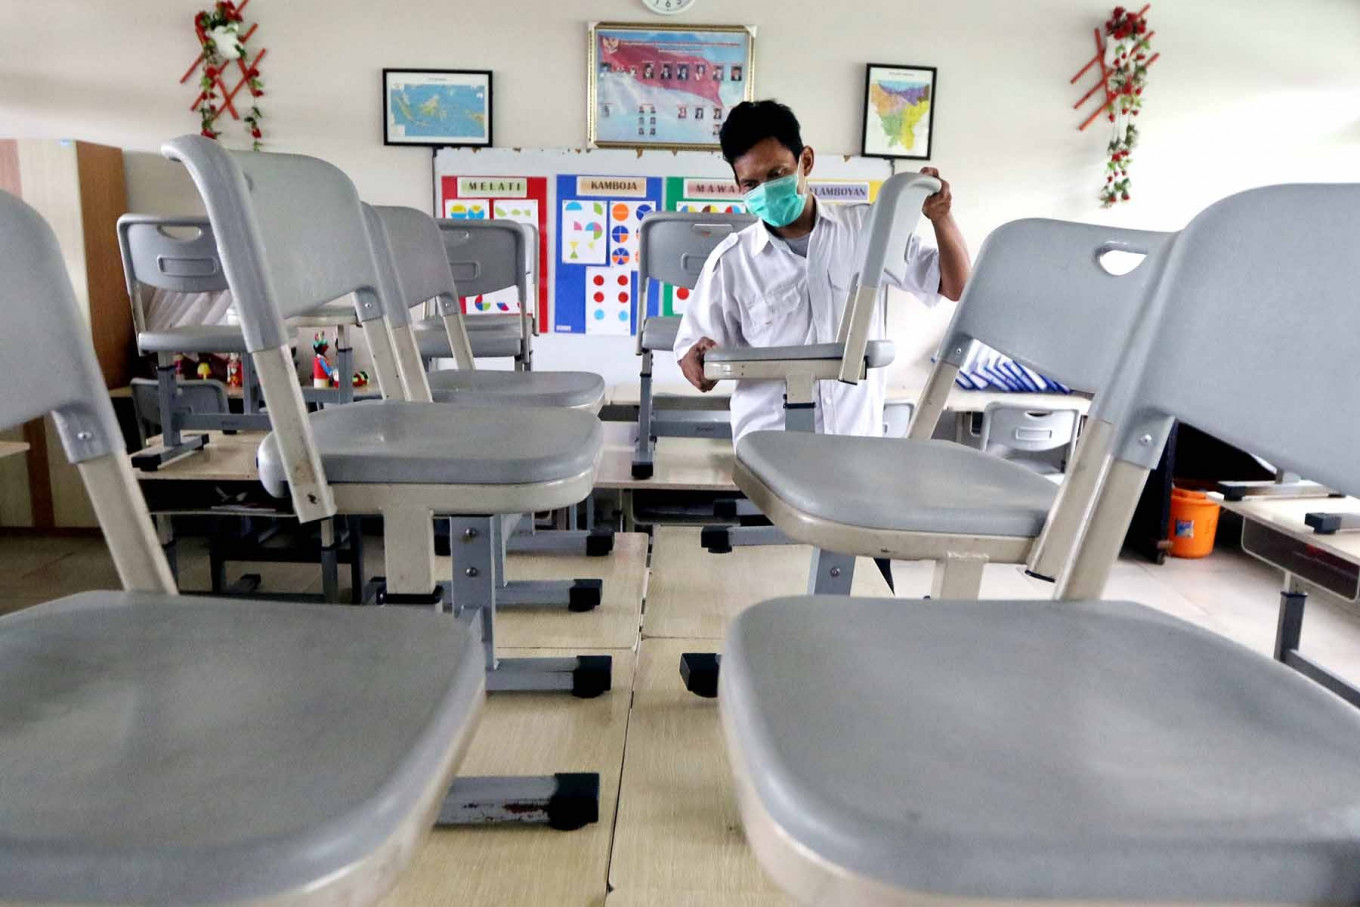 A school custodian arranges desks and chairs in a classroom at SD Bendungan Hilir 05 Pagi state elementary school in Central Jakarta on June 22. The classroom is cleaned twice a week to comply with COVID-19 health protocols. JP/Dhoni Setiawan